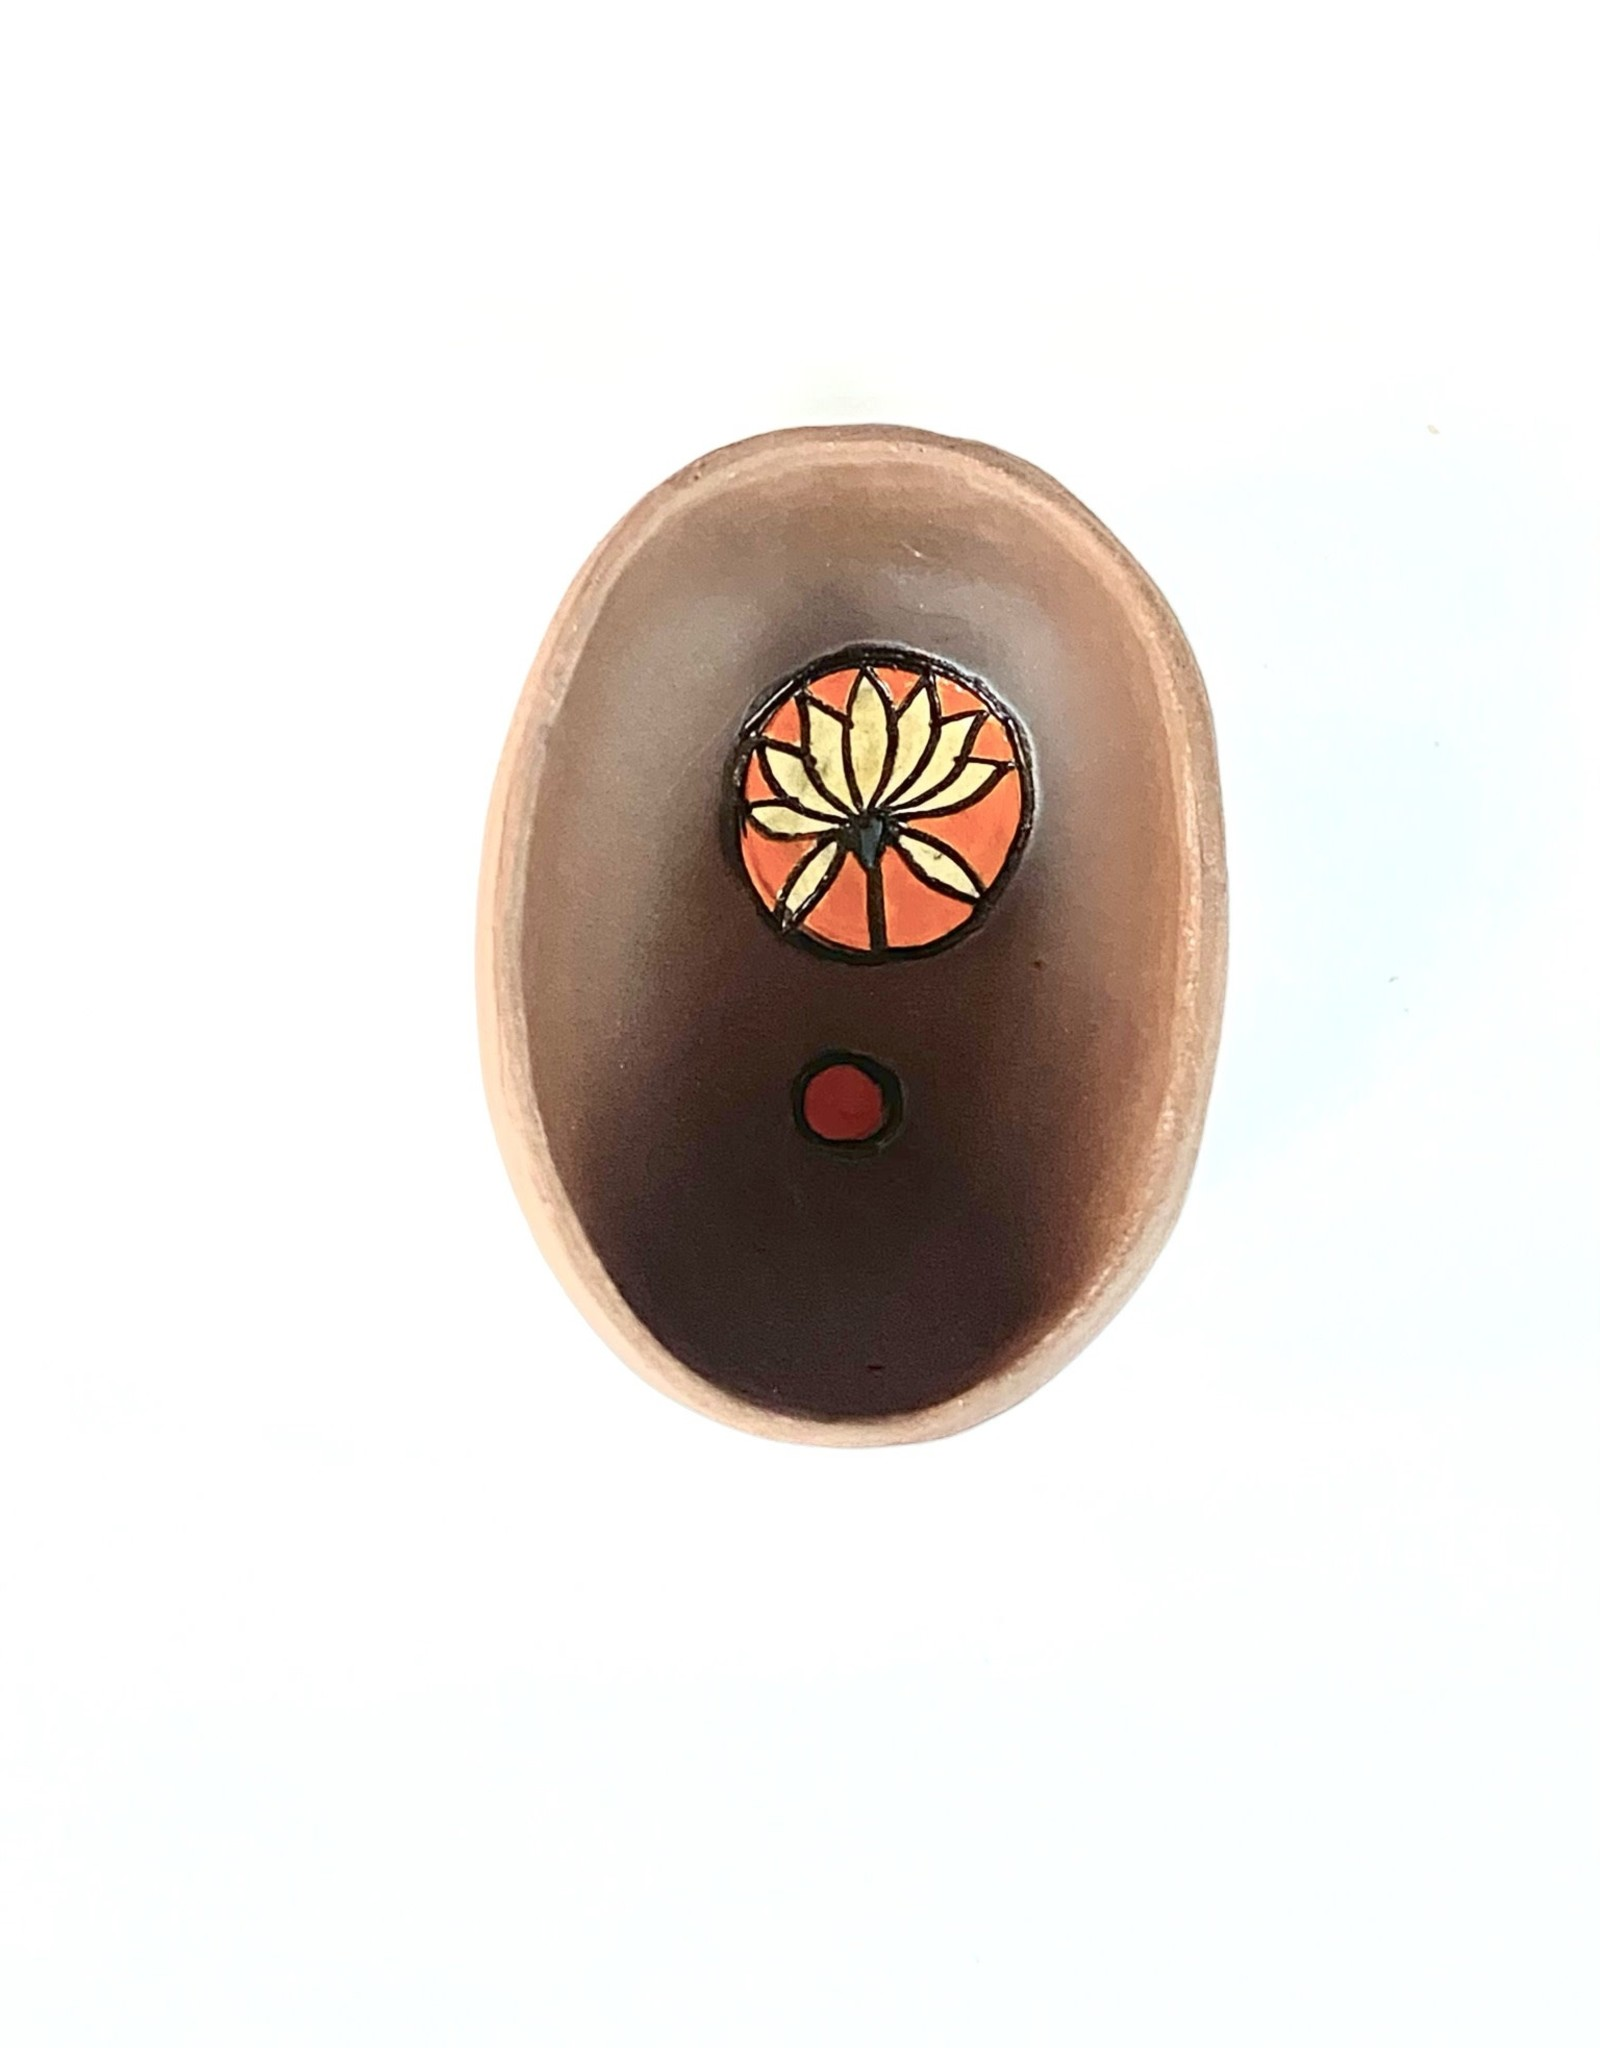 Anshula Tayal Amaati small oval bowls (lotus)